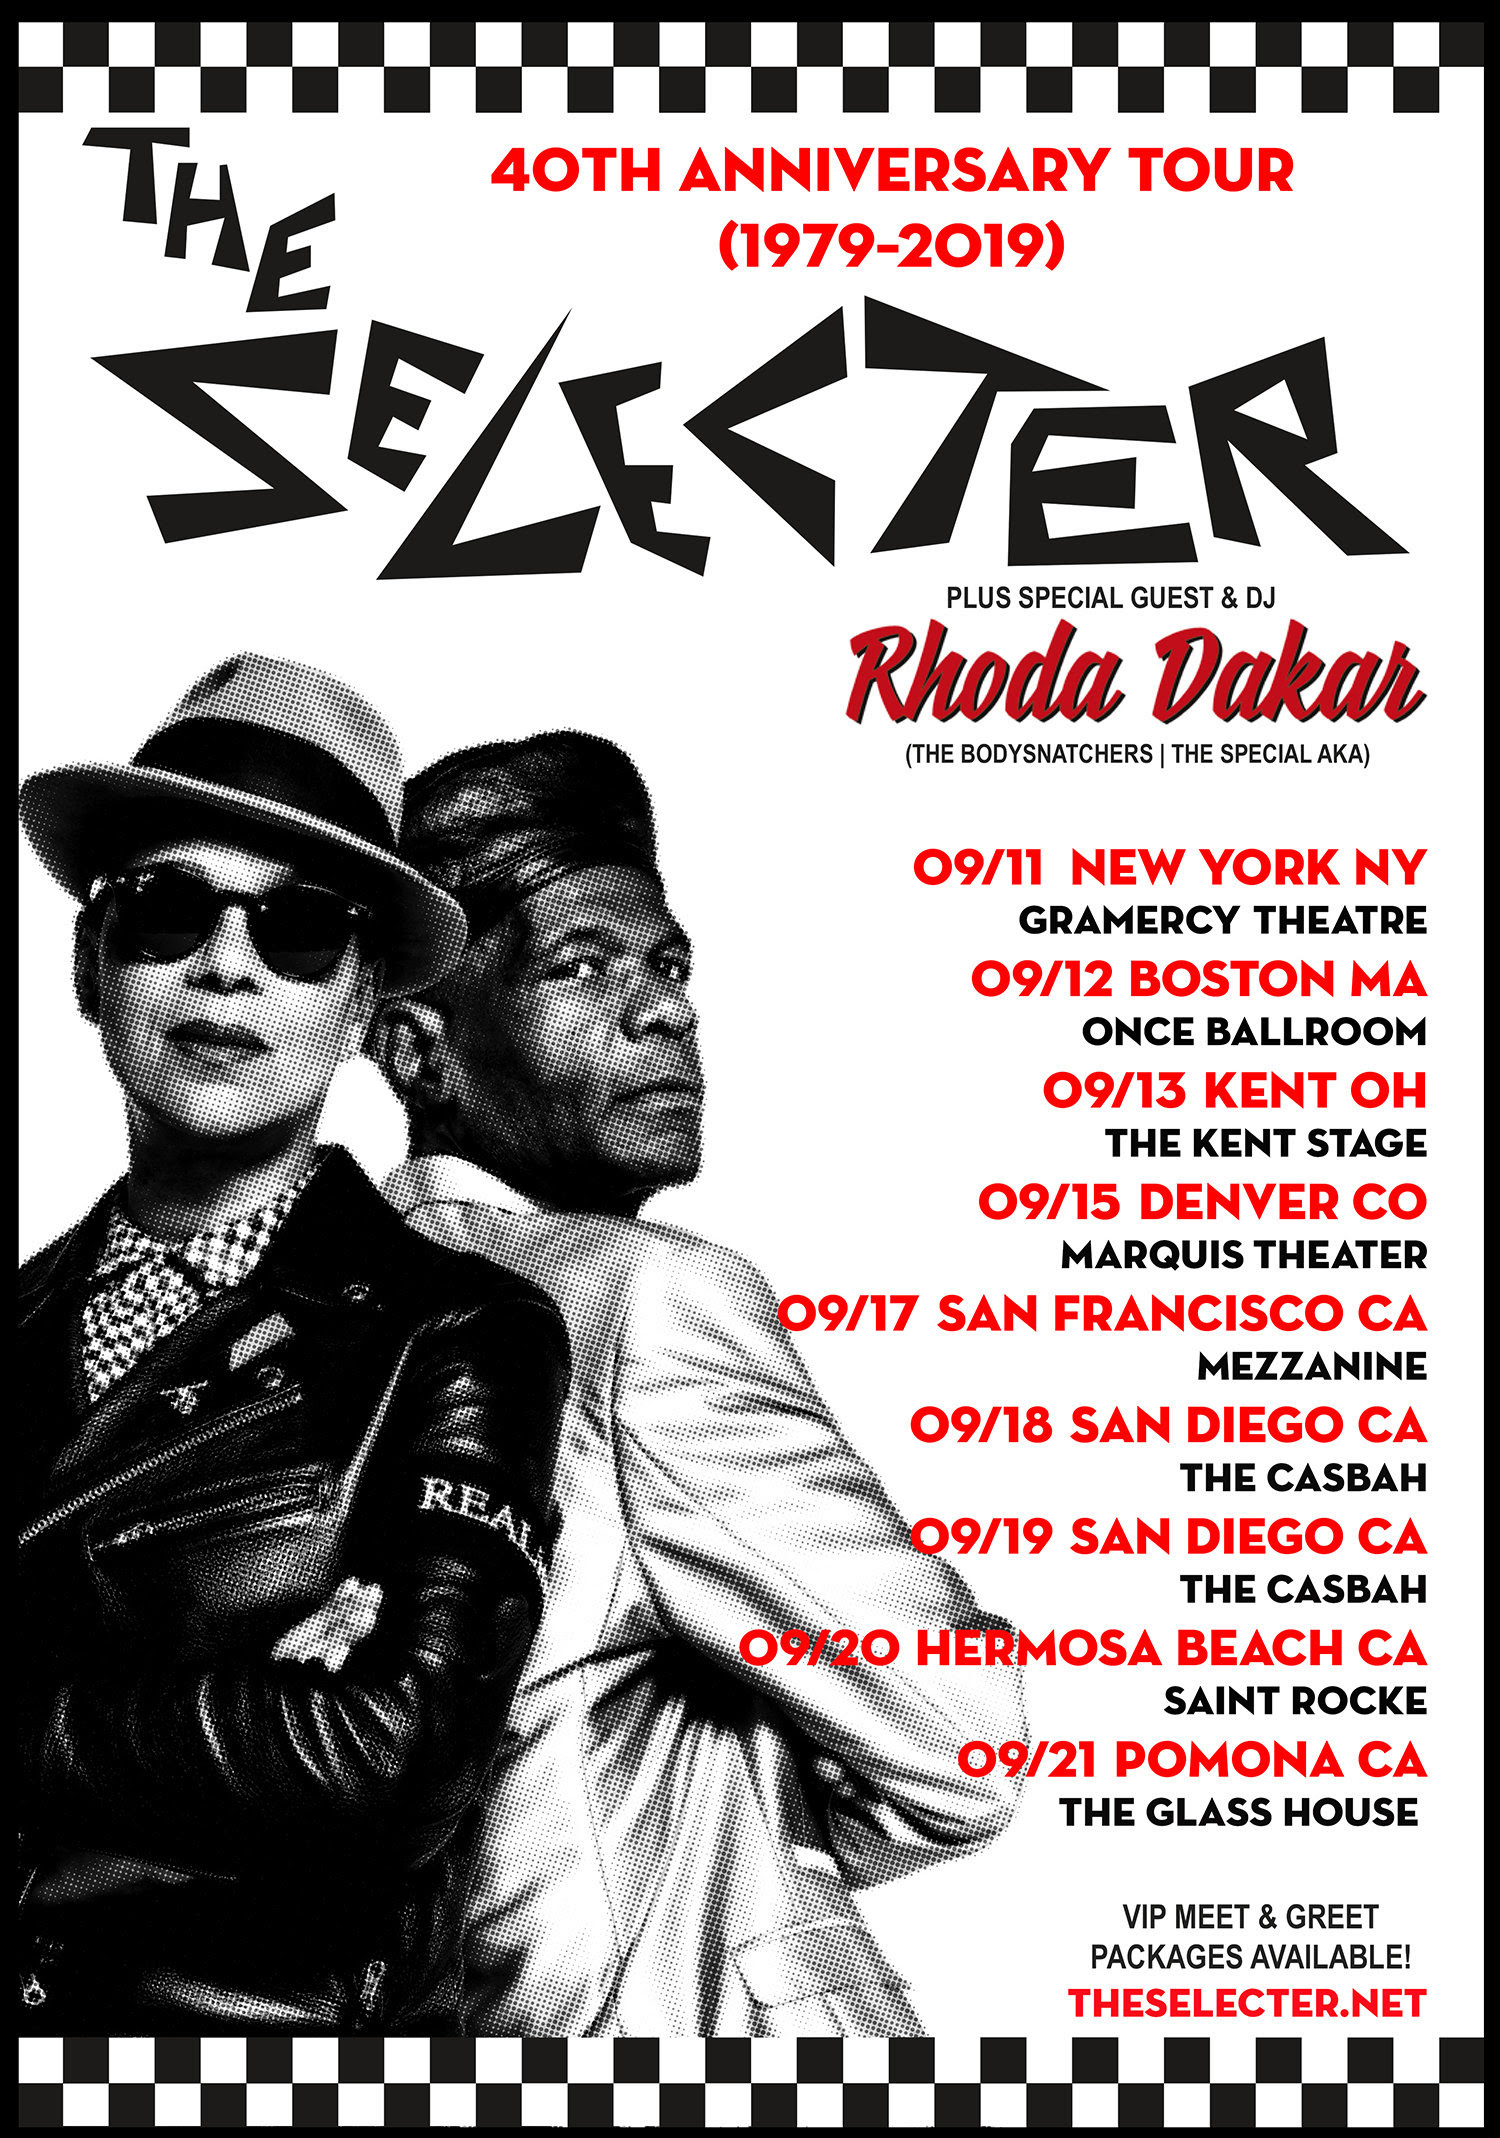 The Selecter 40th anniversary tour 2019 tour poster